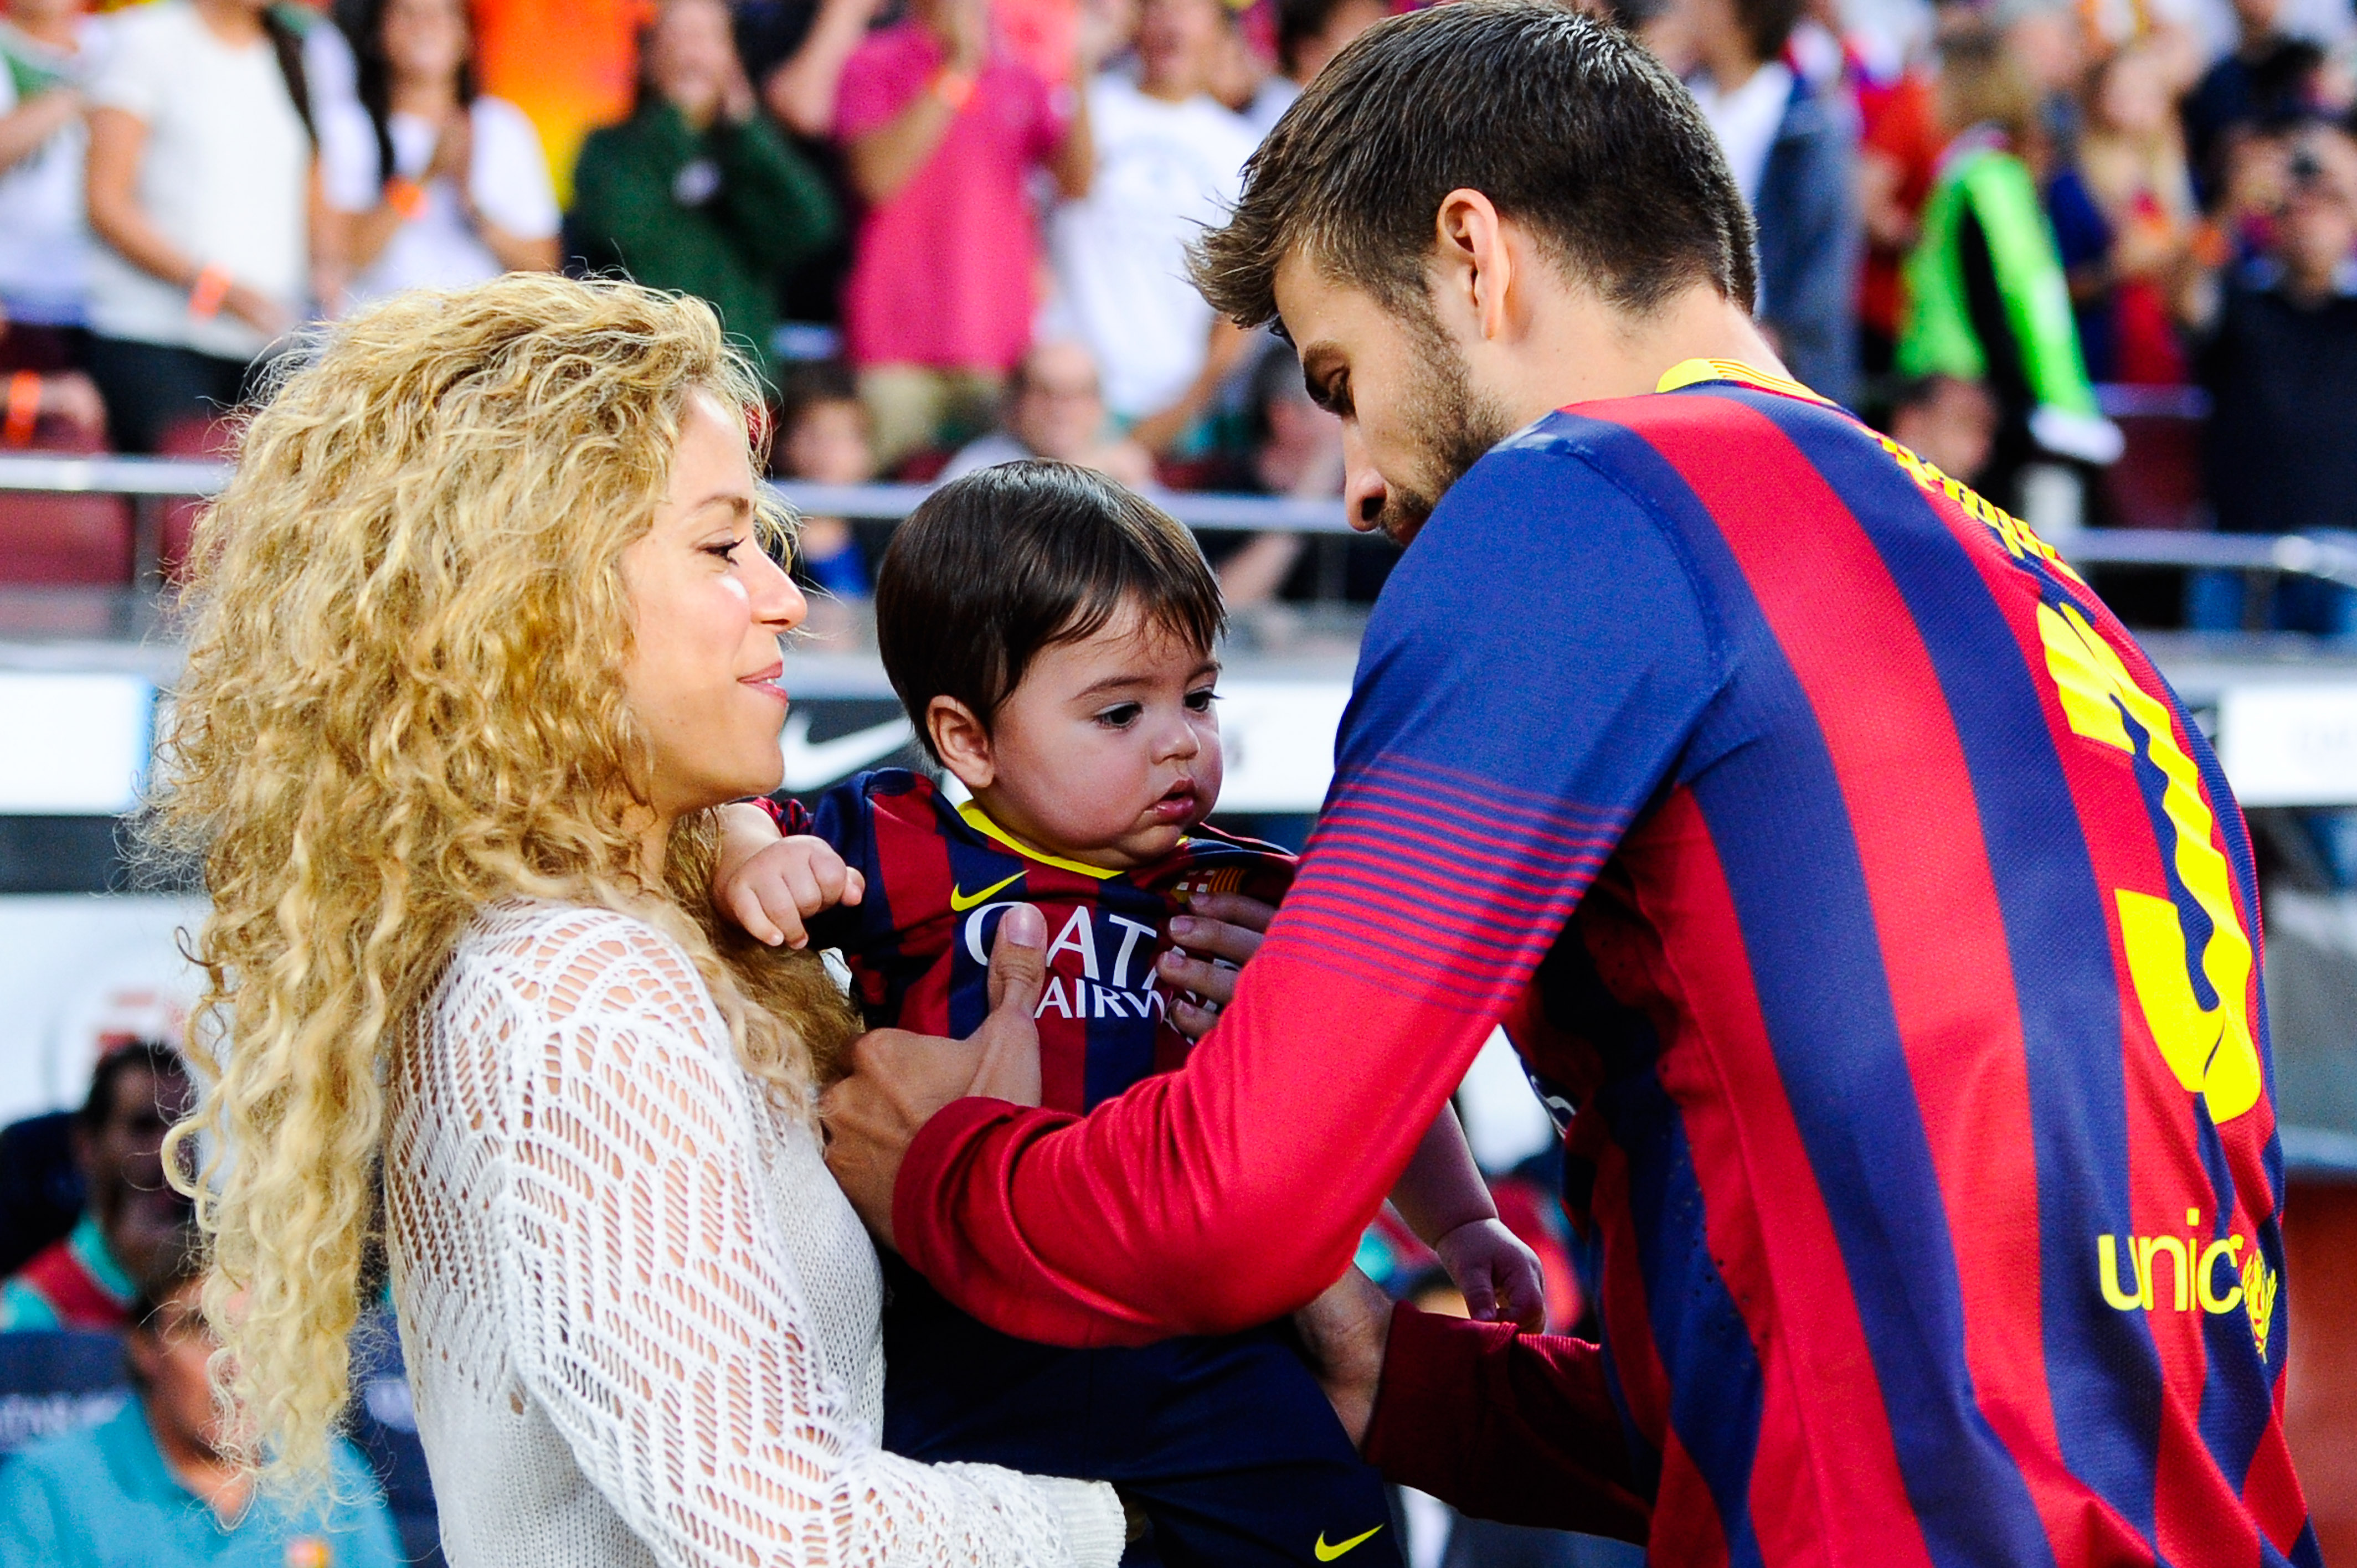 BARCELONA, SPAIN - SEPTEMBER 14: Shakira and Gerard Pique of FC Barcelona are seen with their son Milan prior to the La Liga match between FC Barcelona and Sevilla FC at Camp Nou on September 14, 2013 in Barcelona, Spain. (Photo by David Ramos/Getty Images)